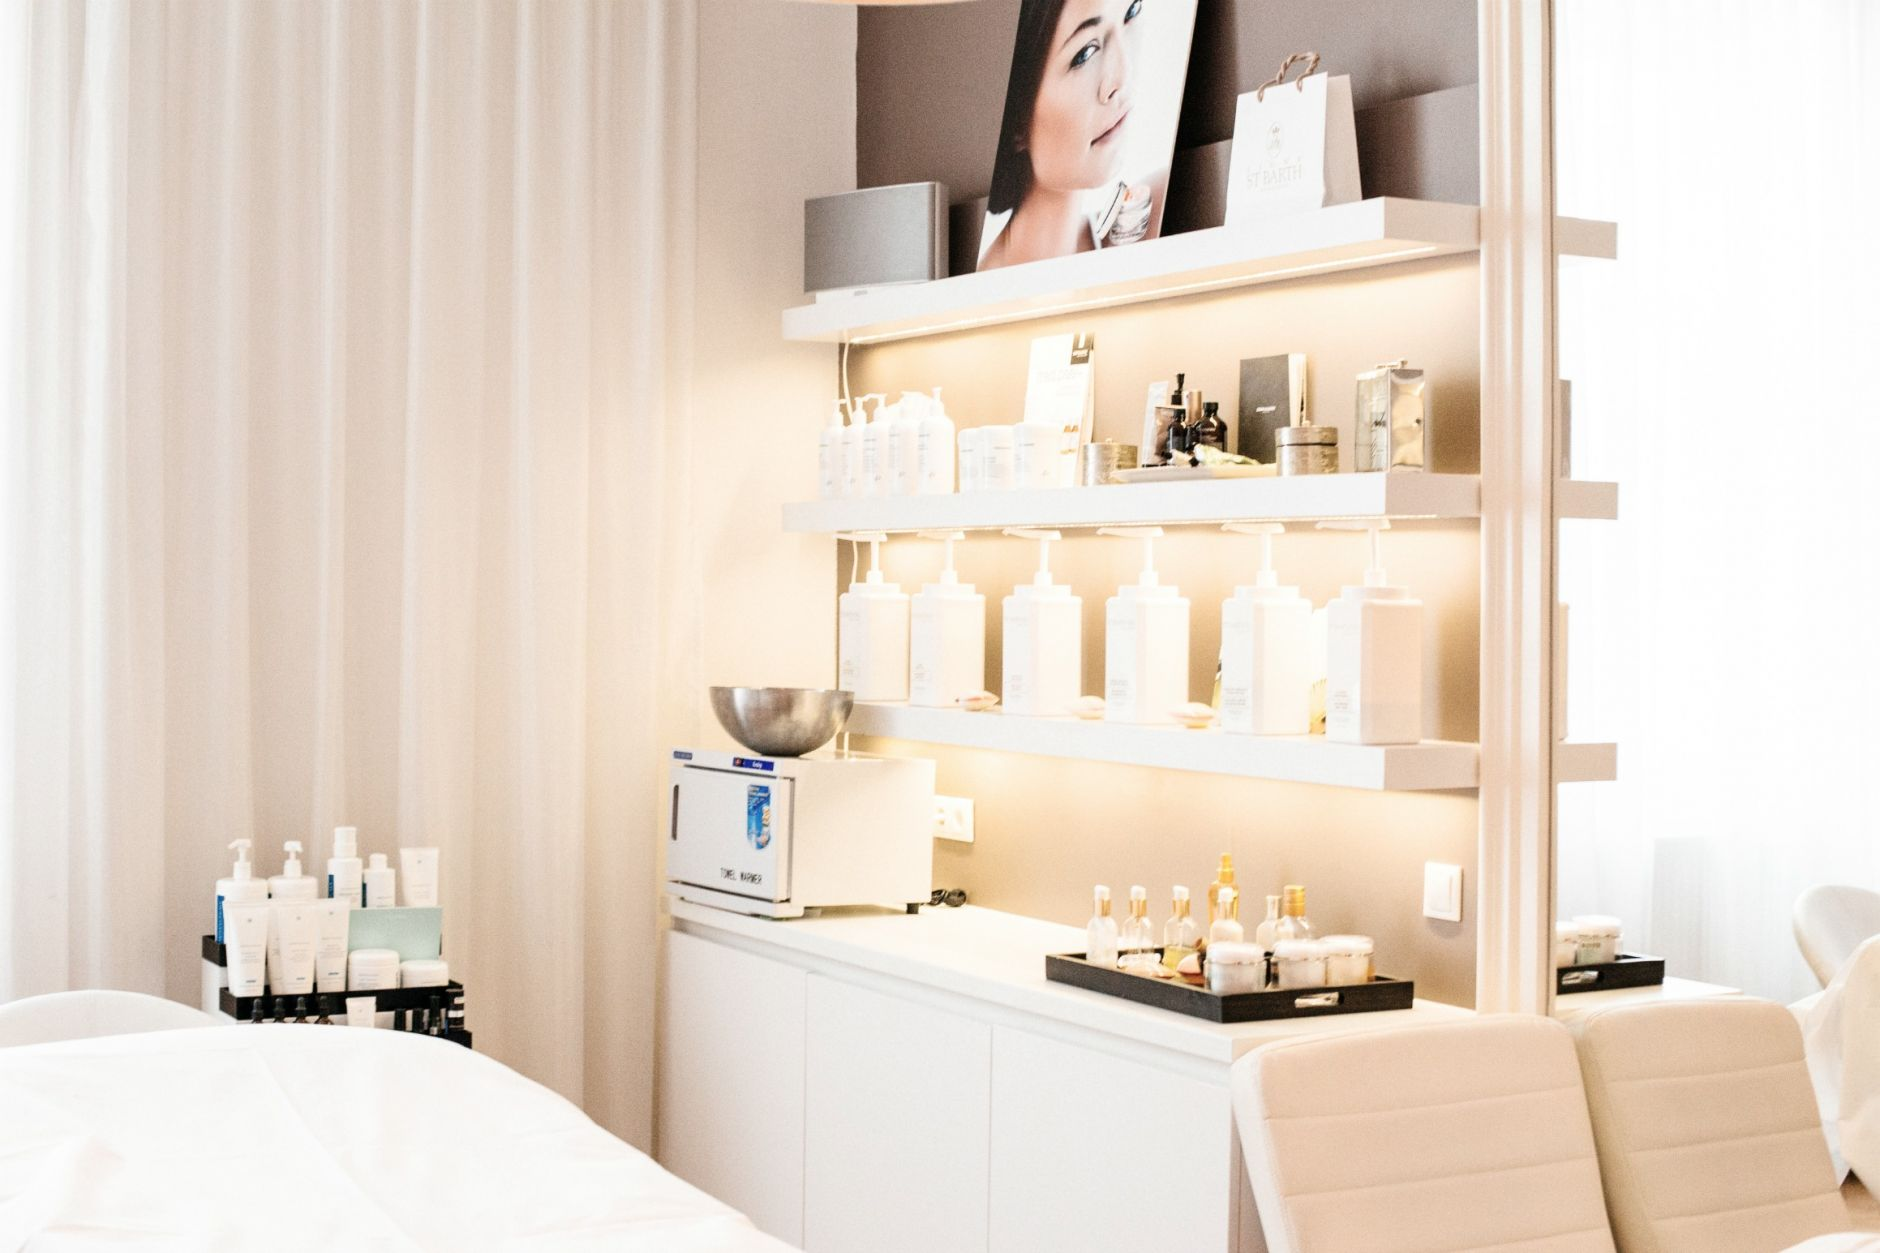 Moser-Milani-Medical-Spa-Wien-Beauty-Vienna-Beauty-Clinic-SkinCeuticals-Disi-Couture